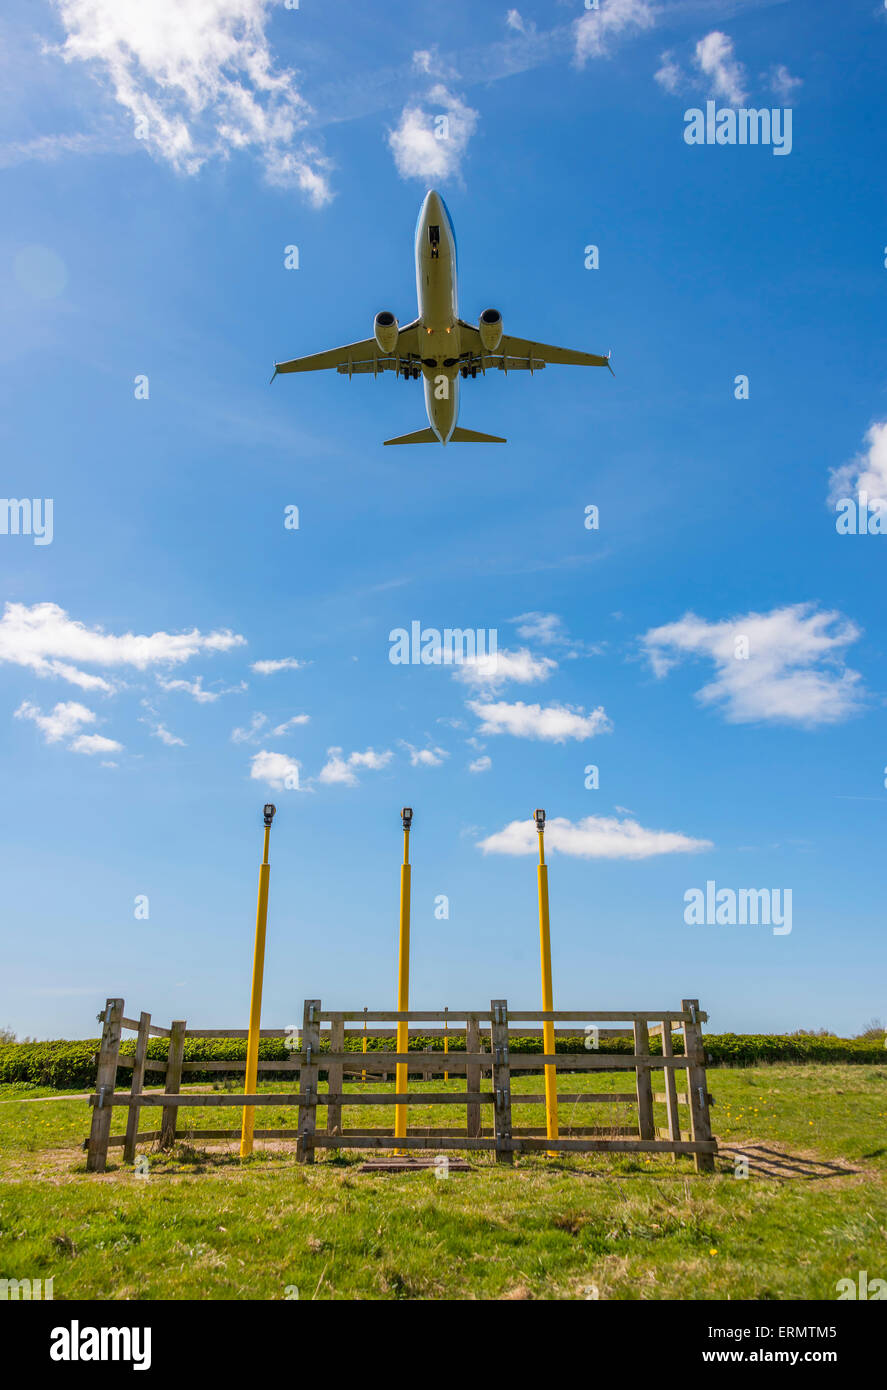 aircraft approaching Manchester over the field containing the runway approach lights - Stock Image